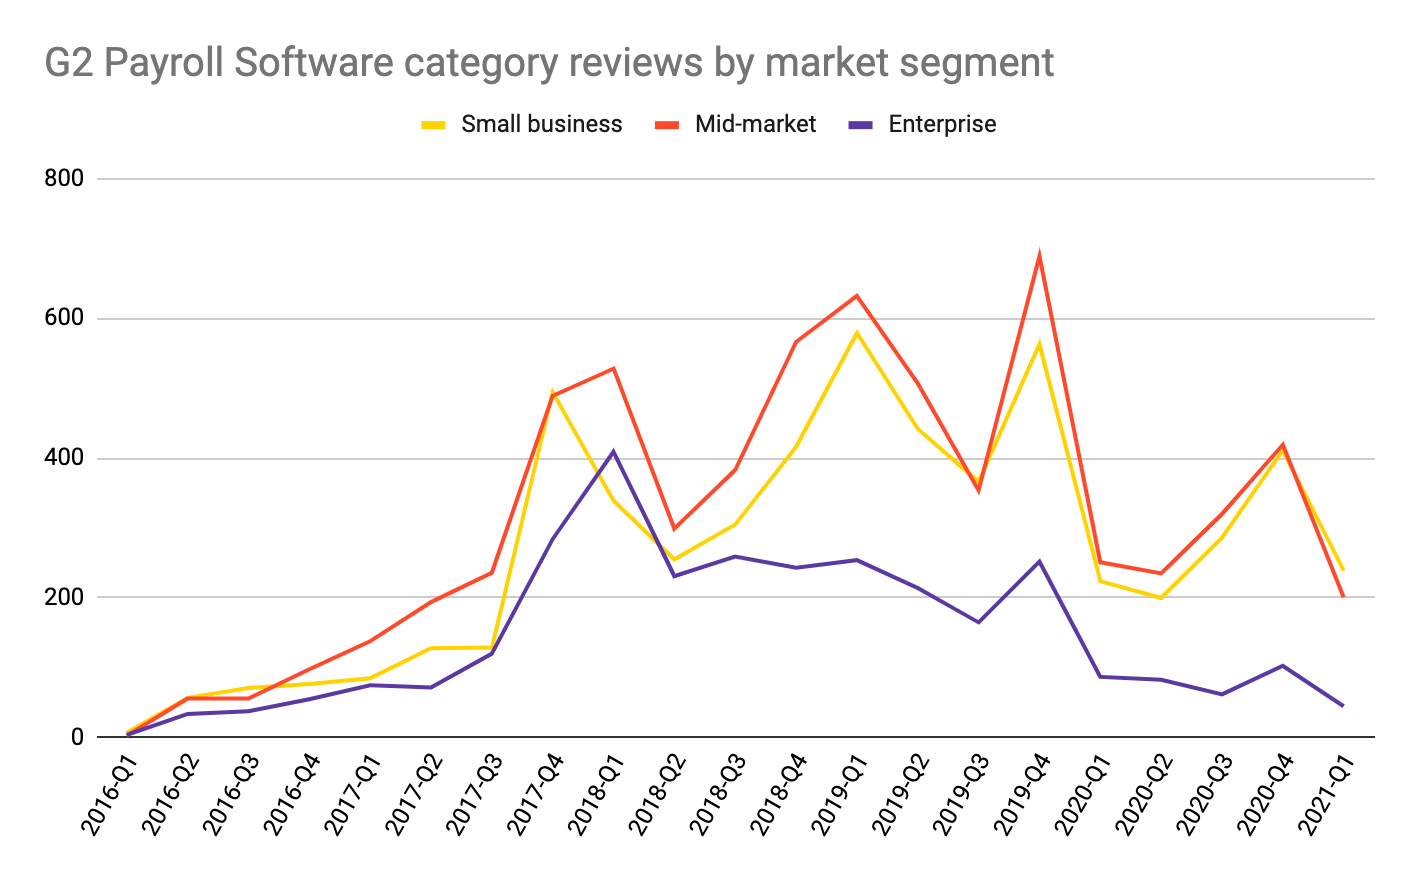 graph depicting G2 payroll software category reviews by market segment